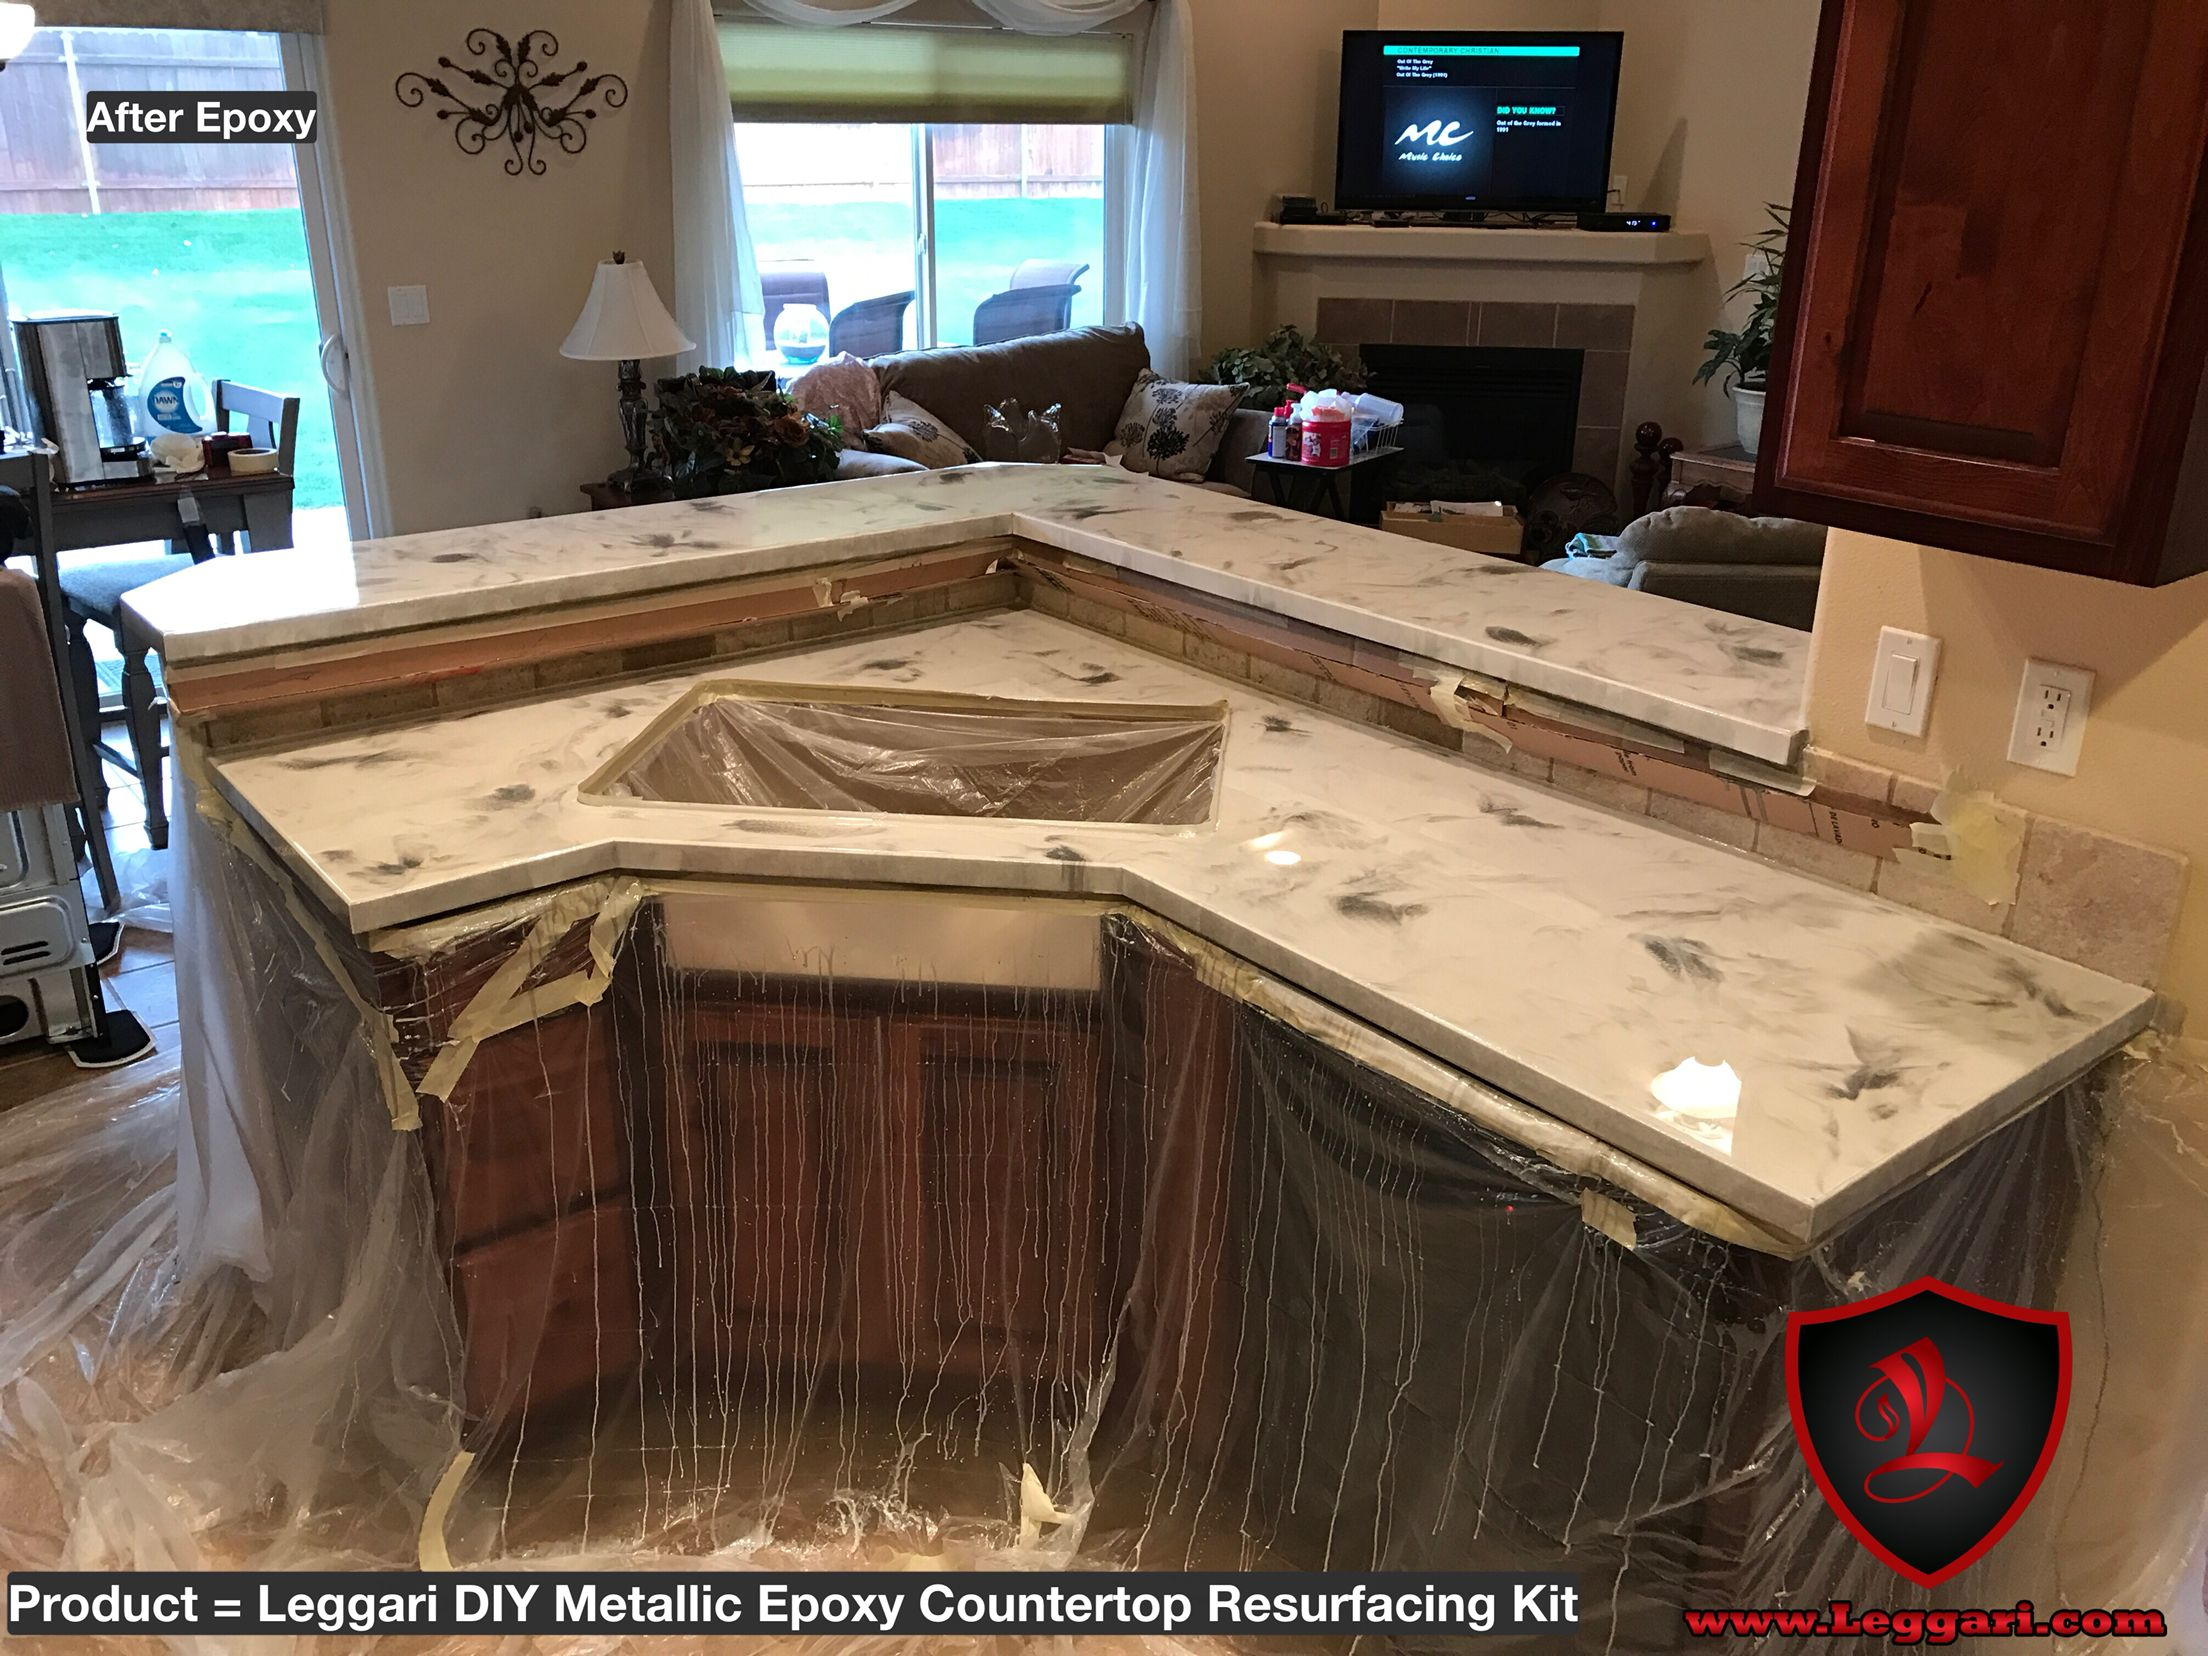 Countertop Epoxy Paint Diy Metallic Epoxy Countertop Kit Installed In A